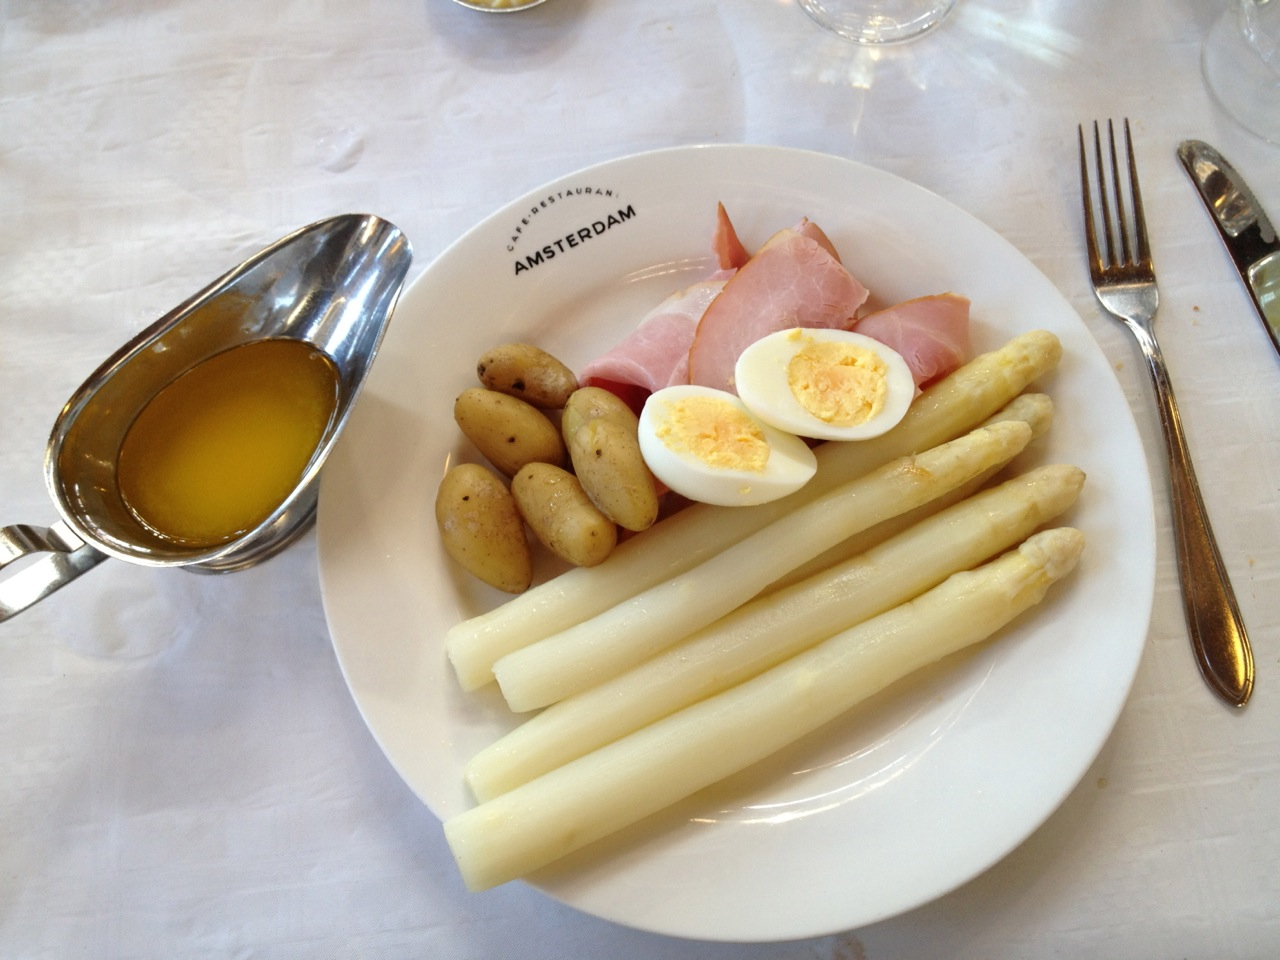 White asparagus to die for